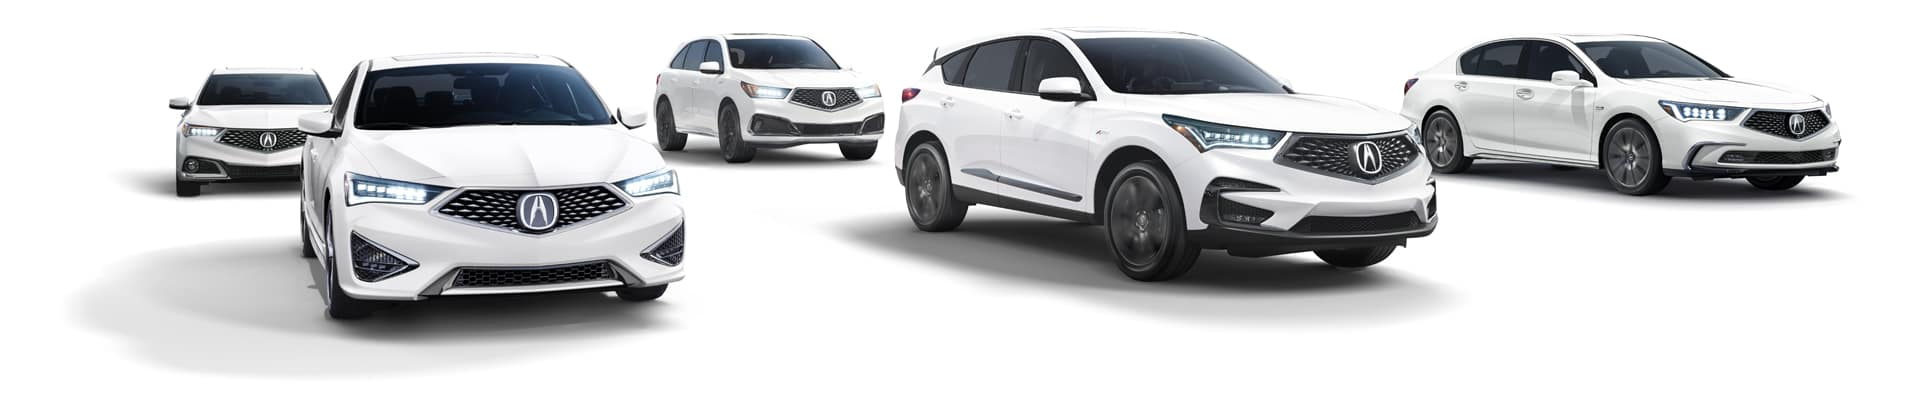 Acura Lease Loyalty Advantages Sunnyside Acura Nashua NH 03063